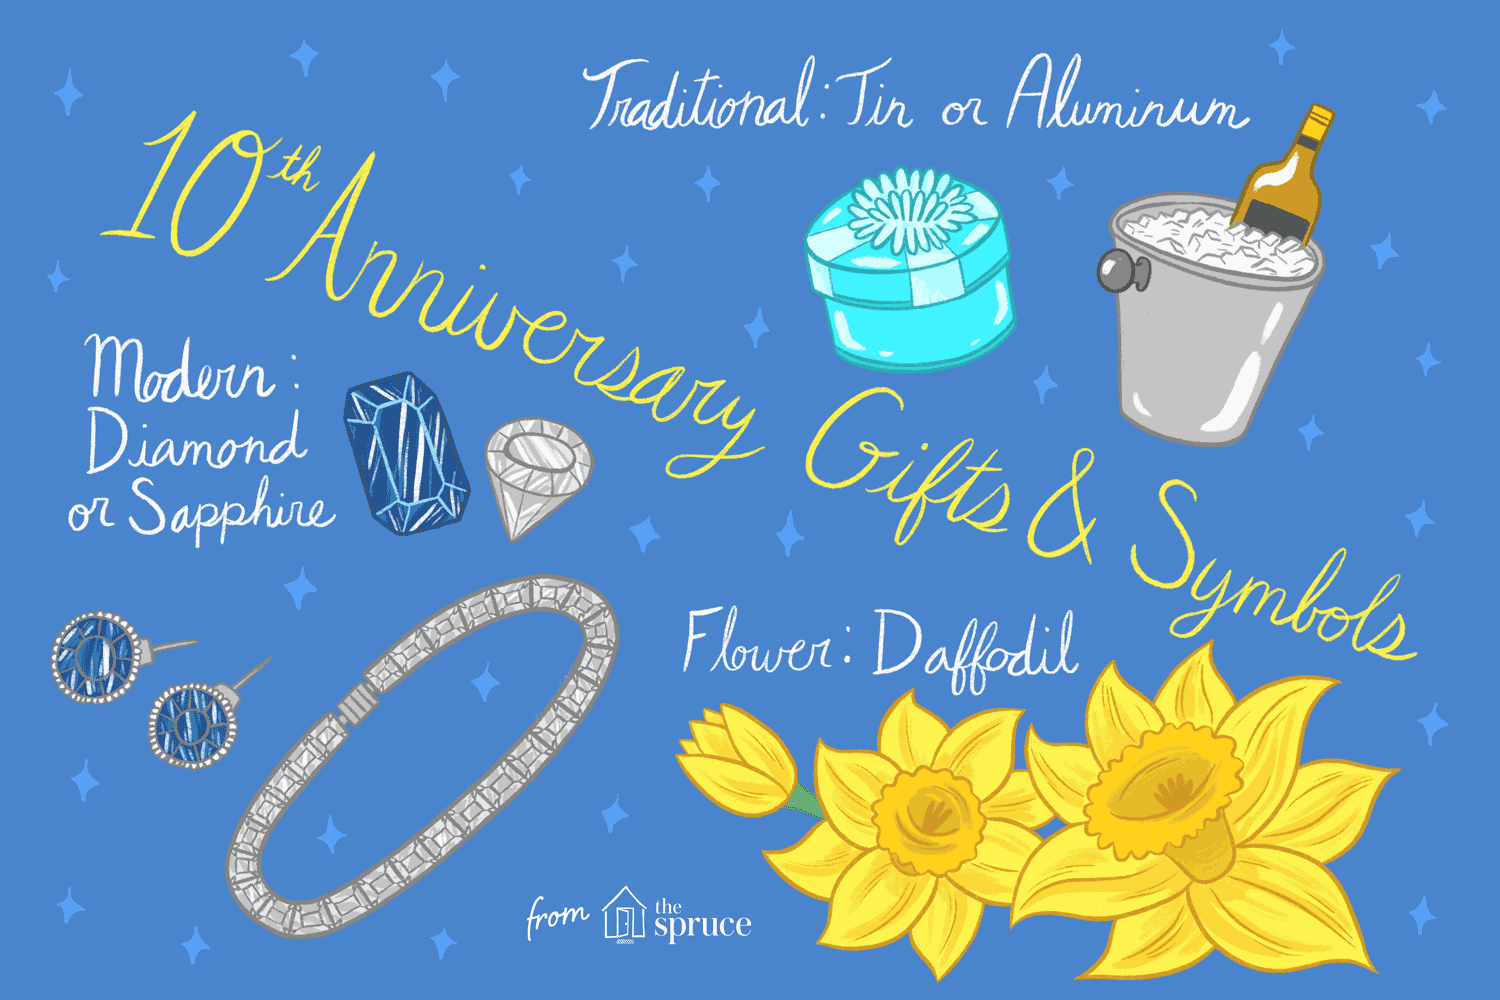 What Are The Gifts For Wedding Anniversaries: 10th Wedding Anniversary Celebration Suggestions